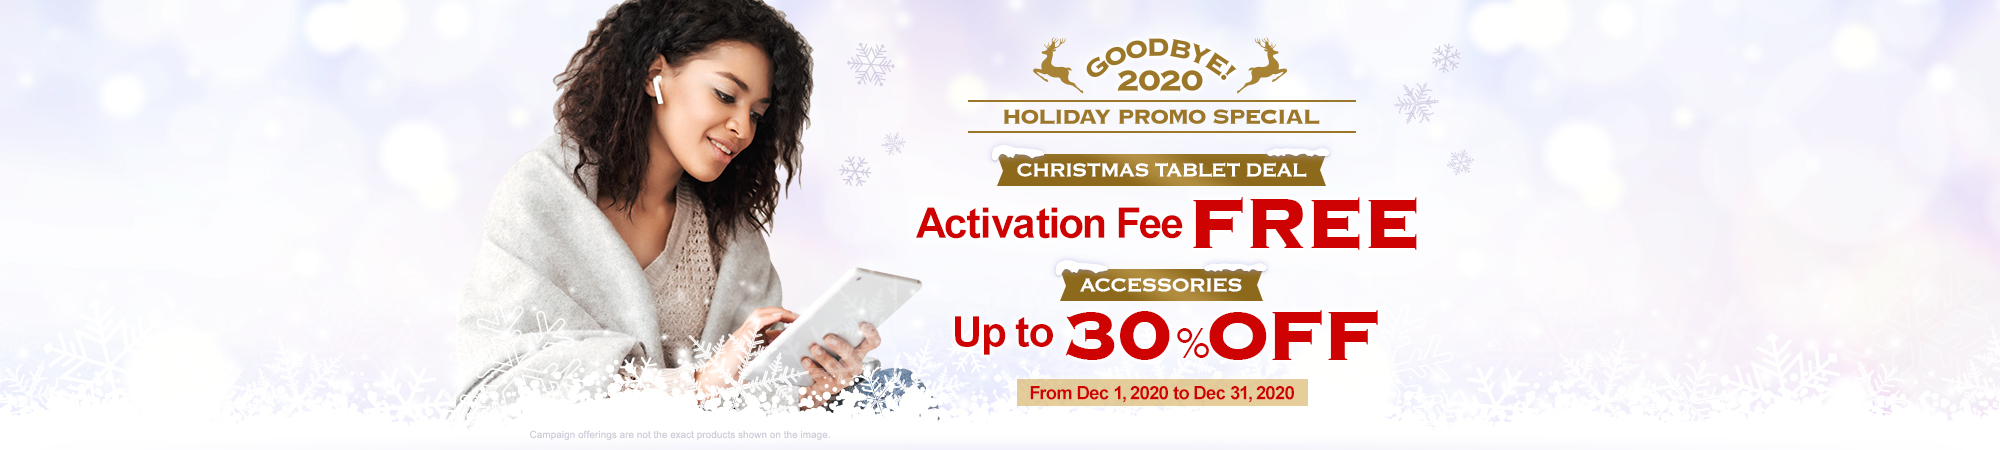 GOOD BYE!2020 HOLIDAY PROMO SPECIAL CHRISTMAS TABLET DEAL Activation Fee FREE ACCESSORIES Up to 30% OFF From Dec 1, 2020 to Dec 31,2020 Campaign offerings are not the exact products shown on the image.